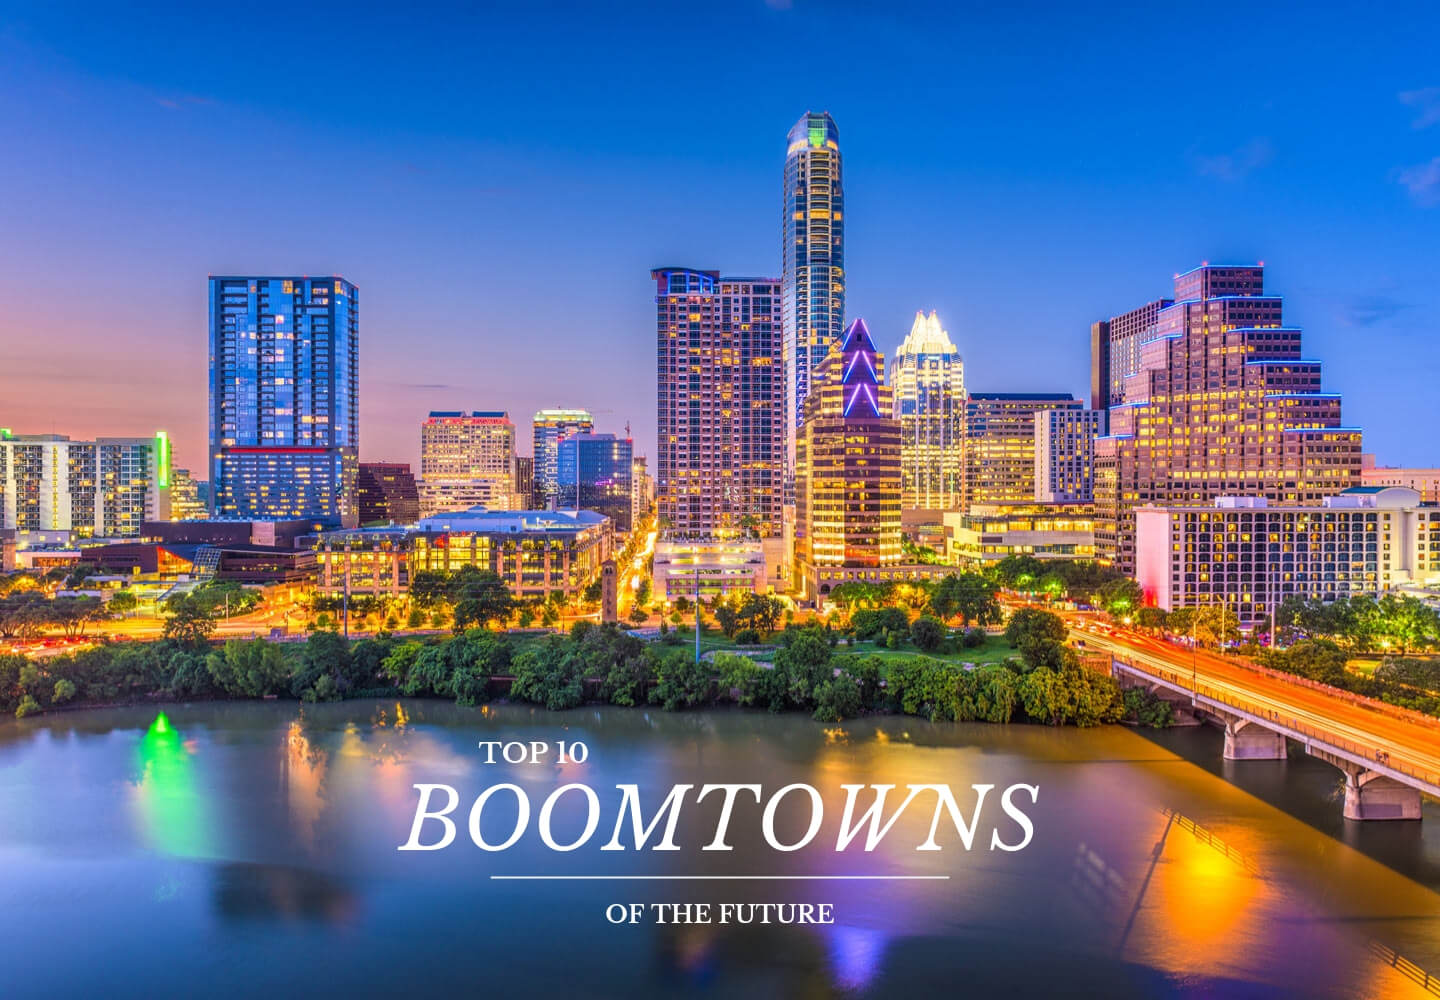 Top 10 Boomtowns